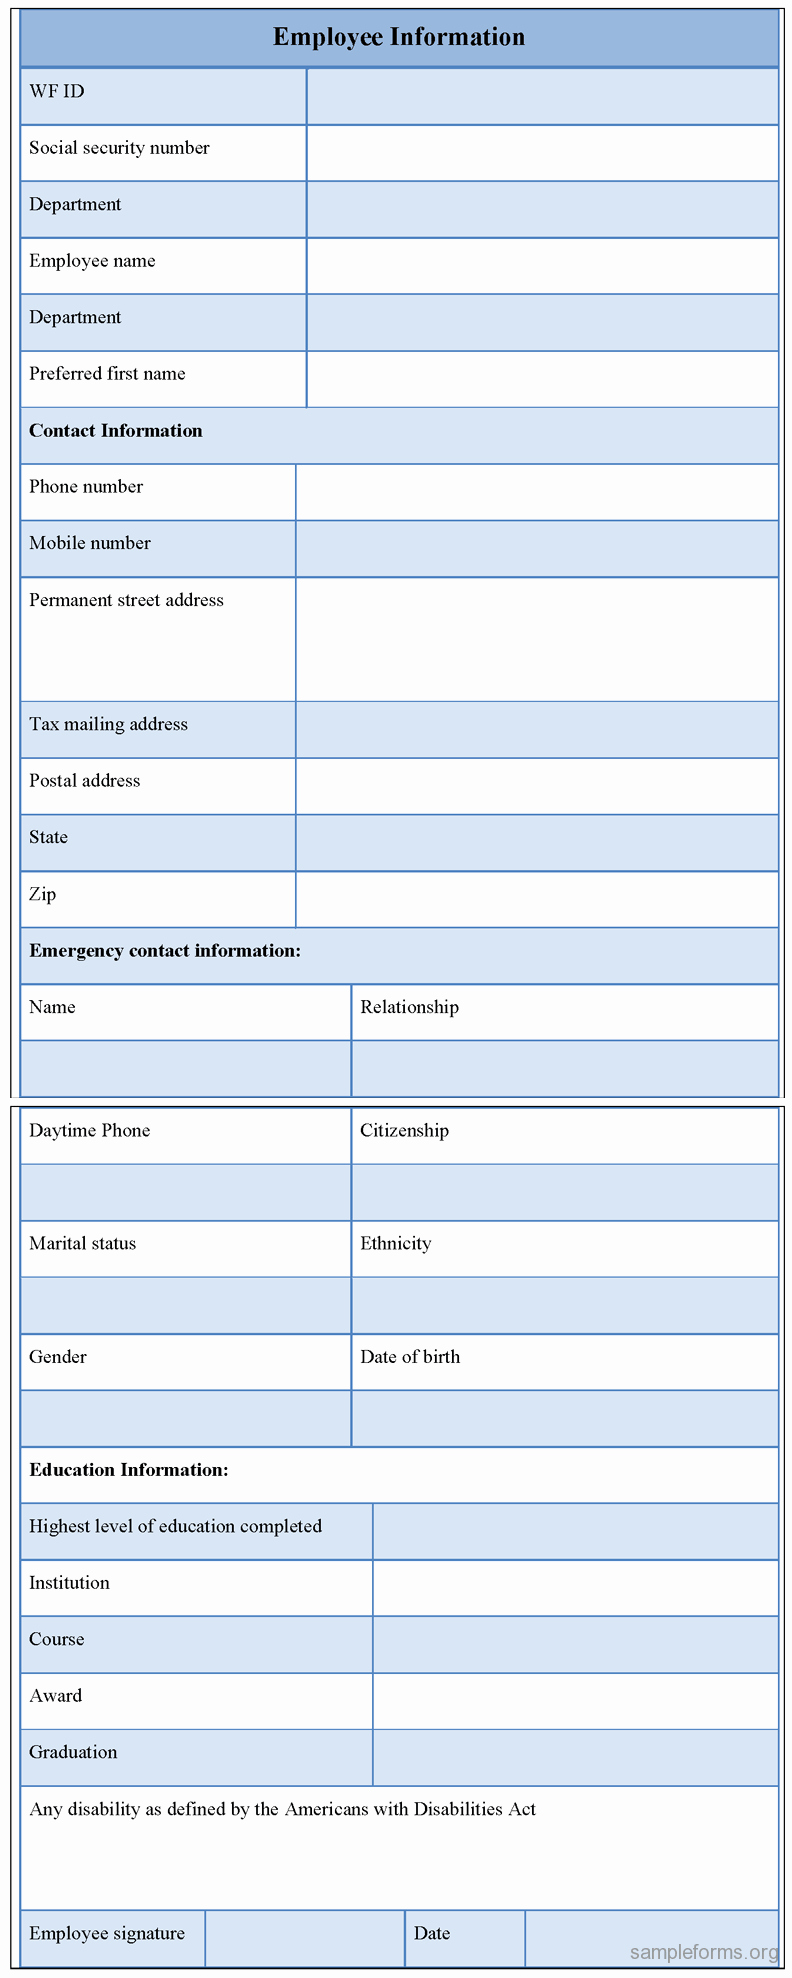 Employee Information form Sample forms